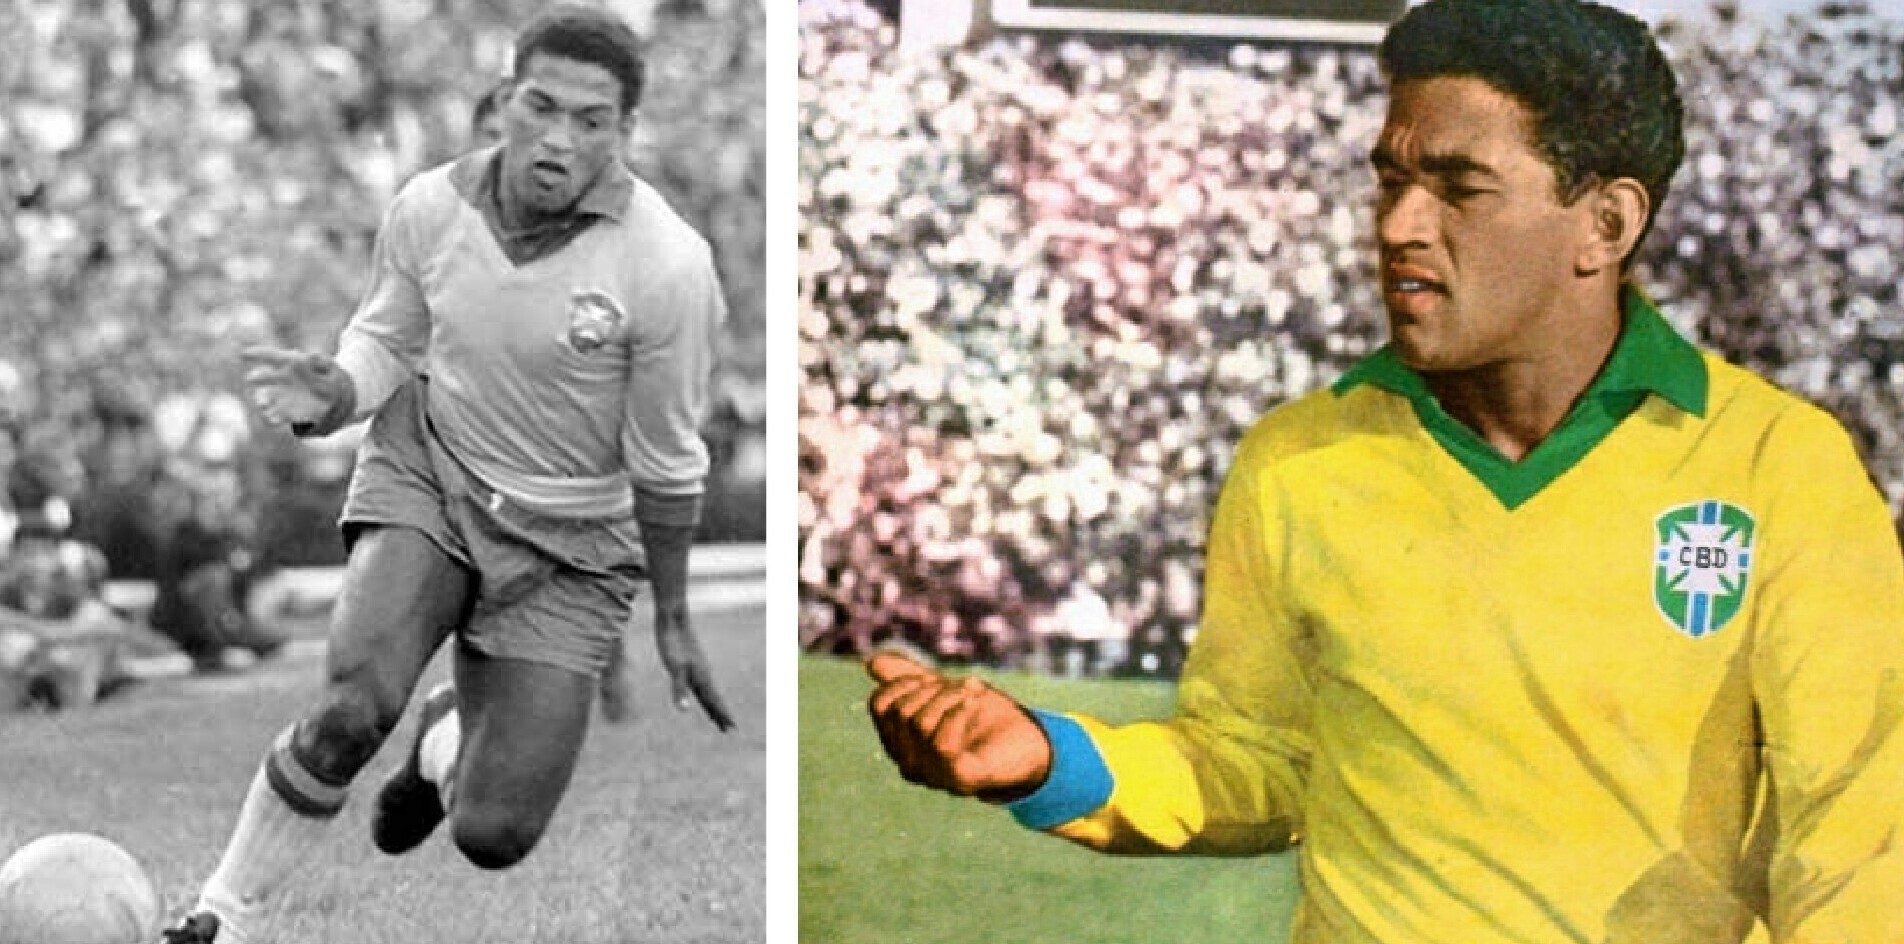 34 YEARS AFTER DEATH! Family Blows Hot Over MissingBones Of Brazil Superstar Garrincha